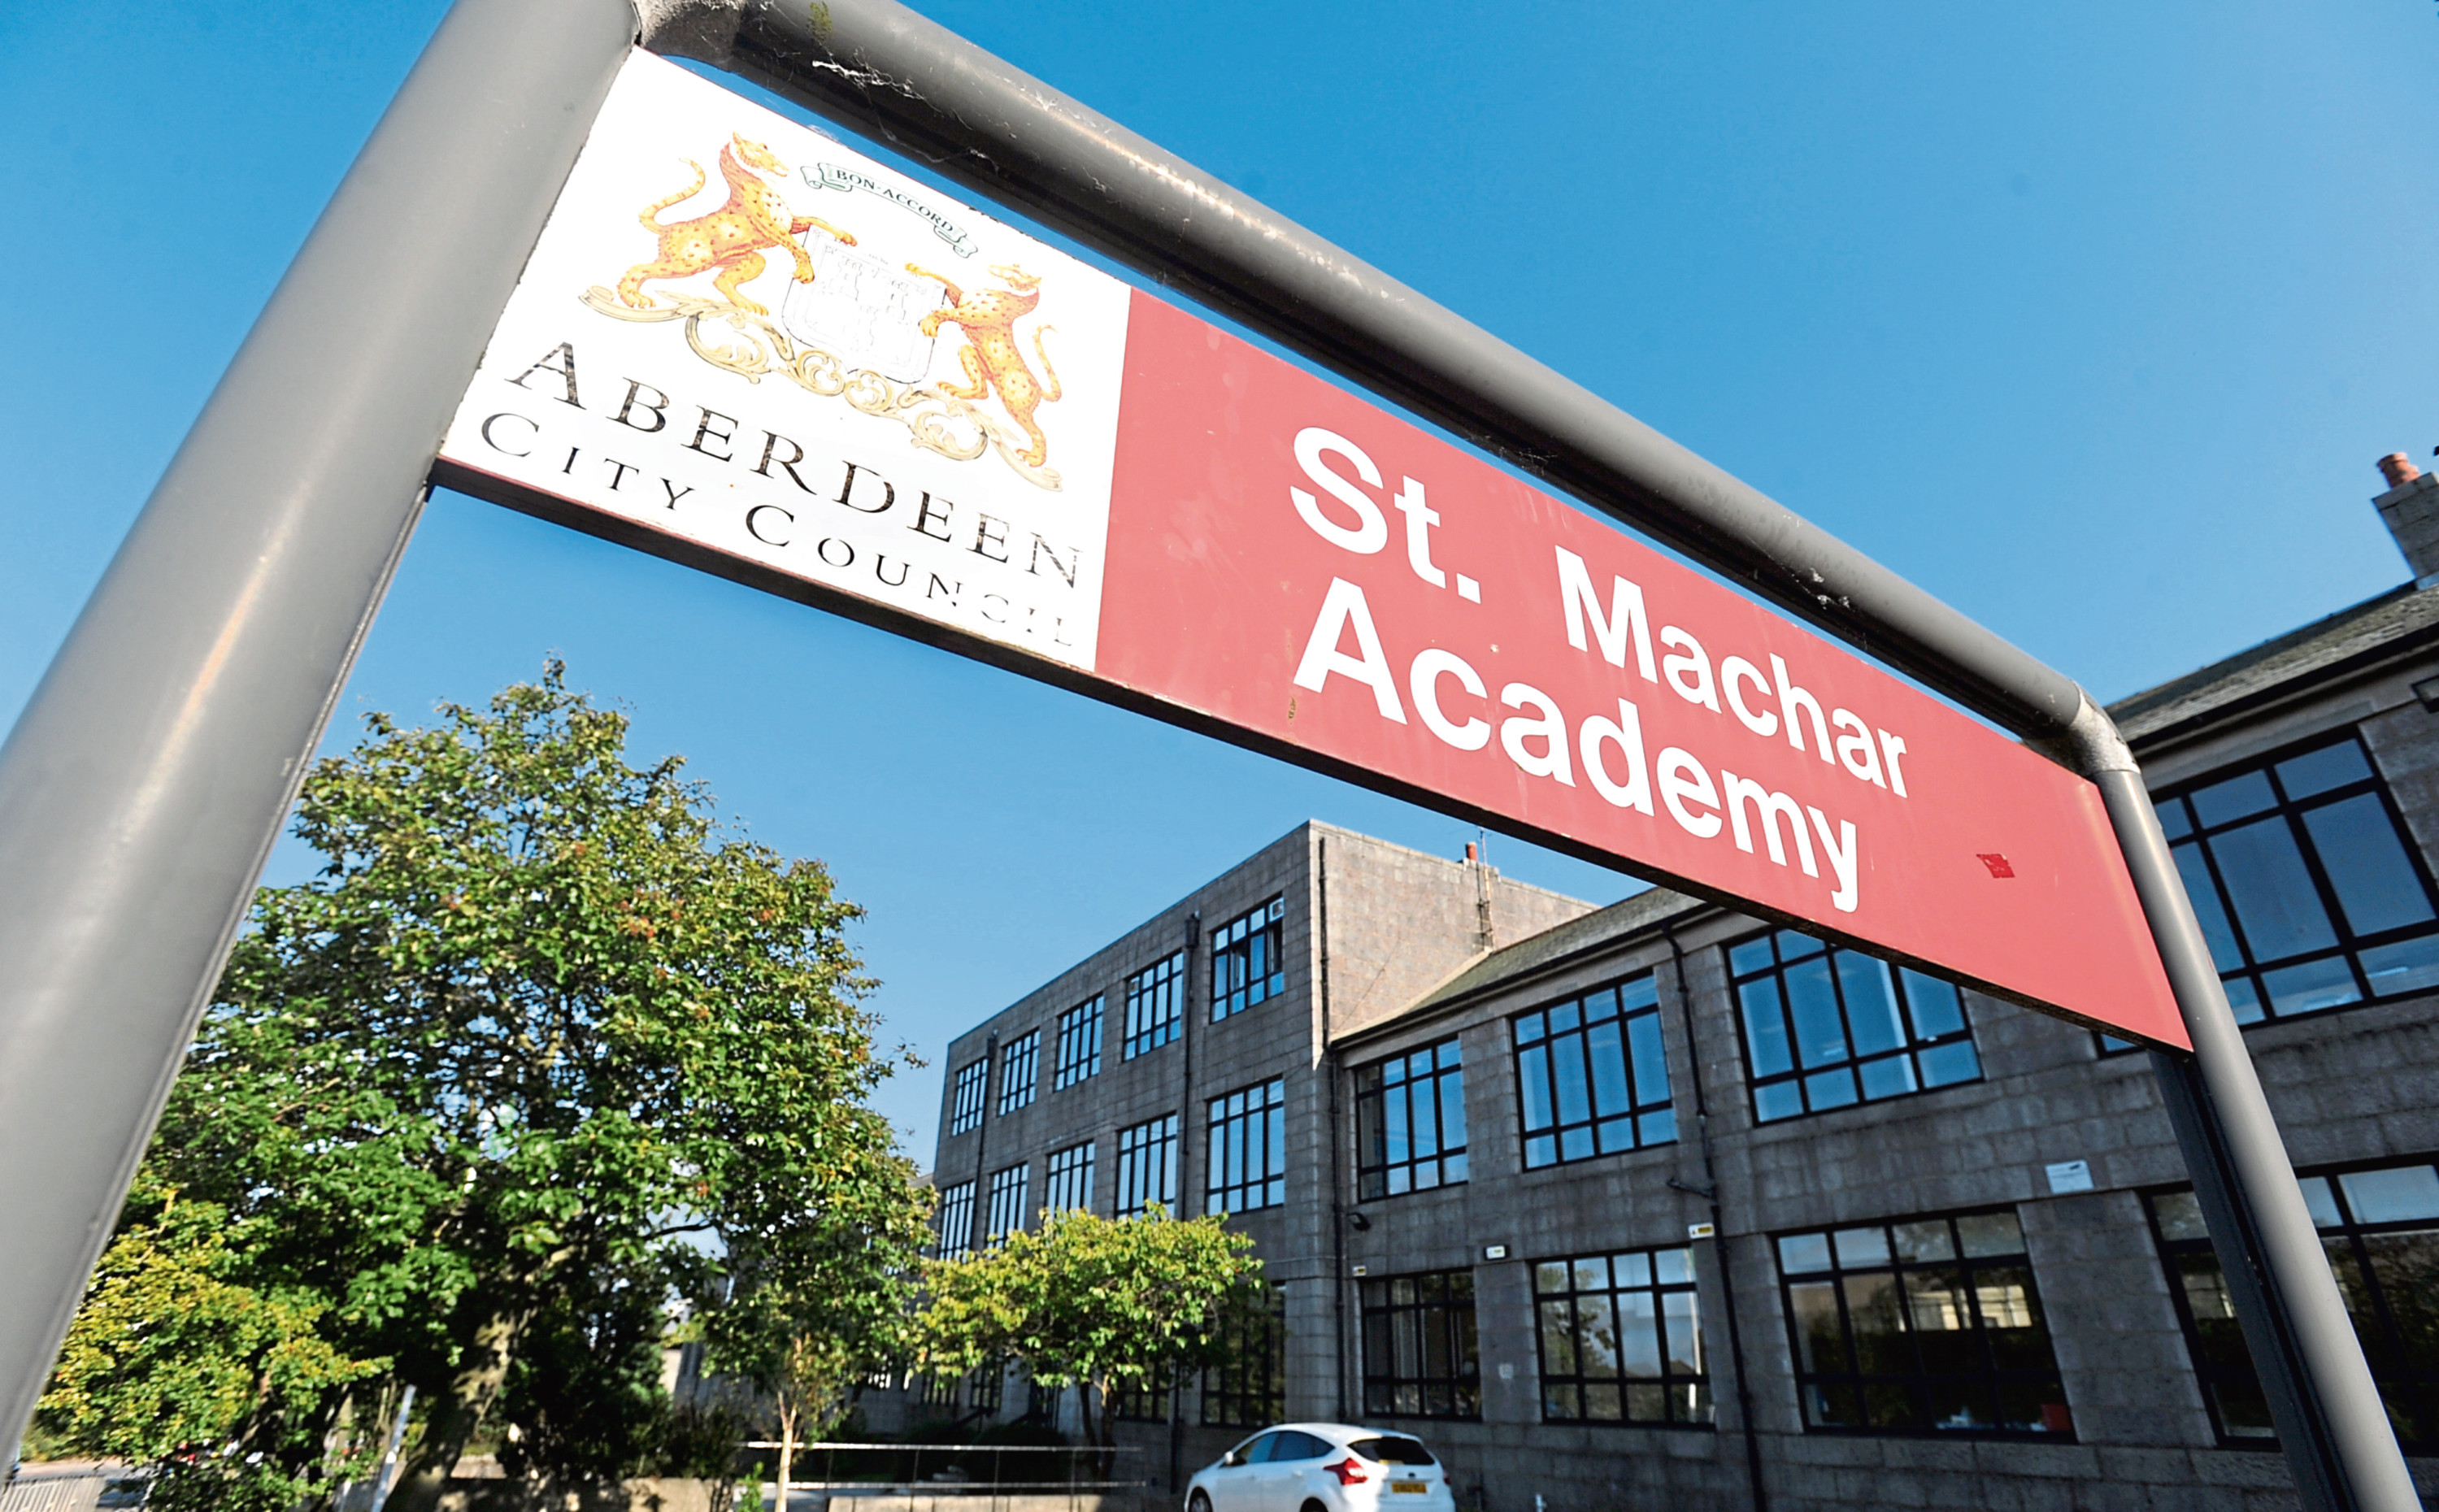 St Machar Academy had the highest number of vandalism incidents